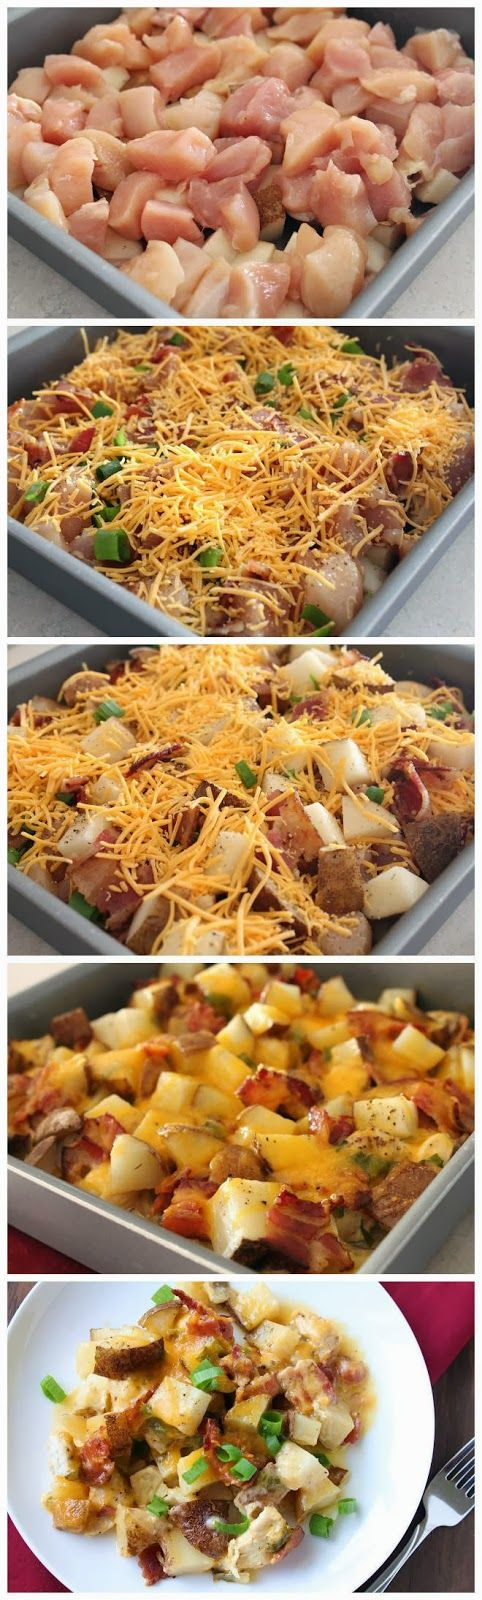 SUCCESS! Loaded Baked Potato & Chicken Casserole. This was fast and easy and everyone loved it.